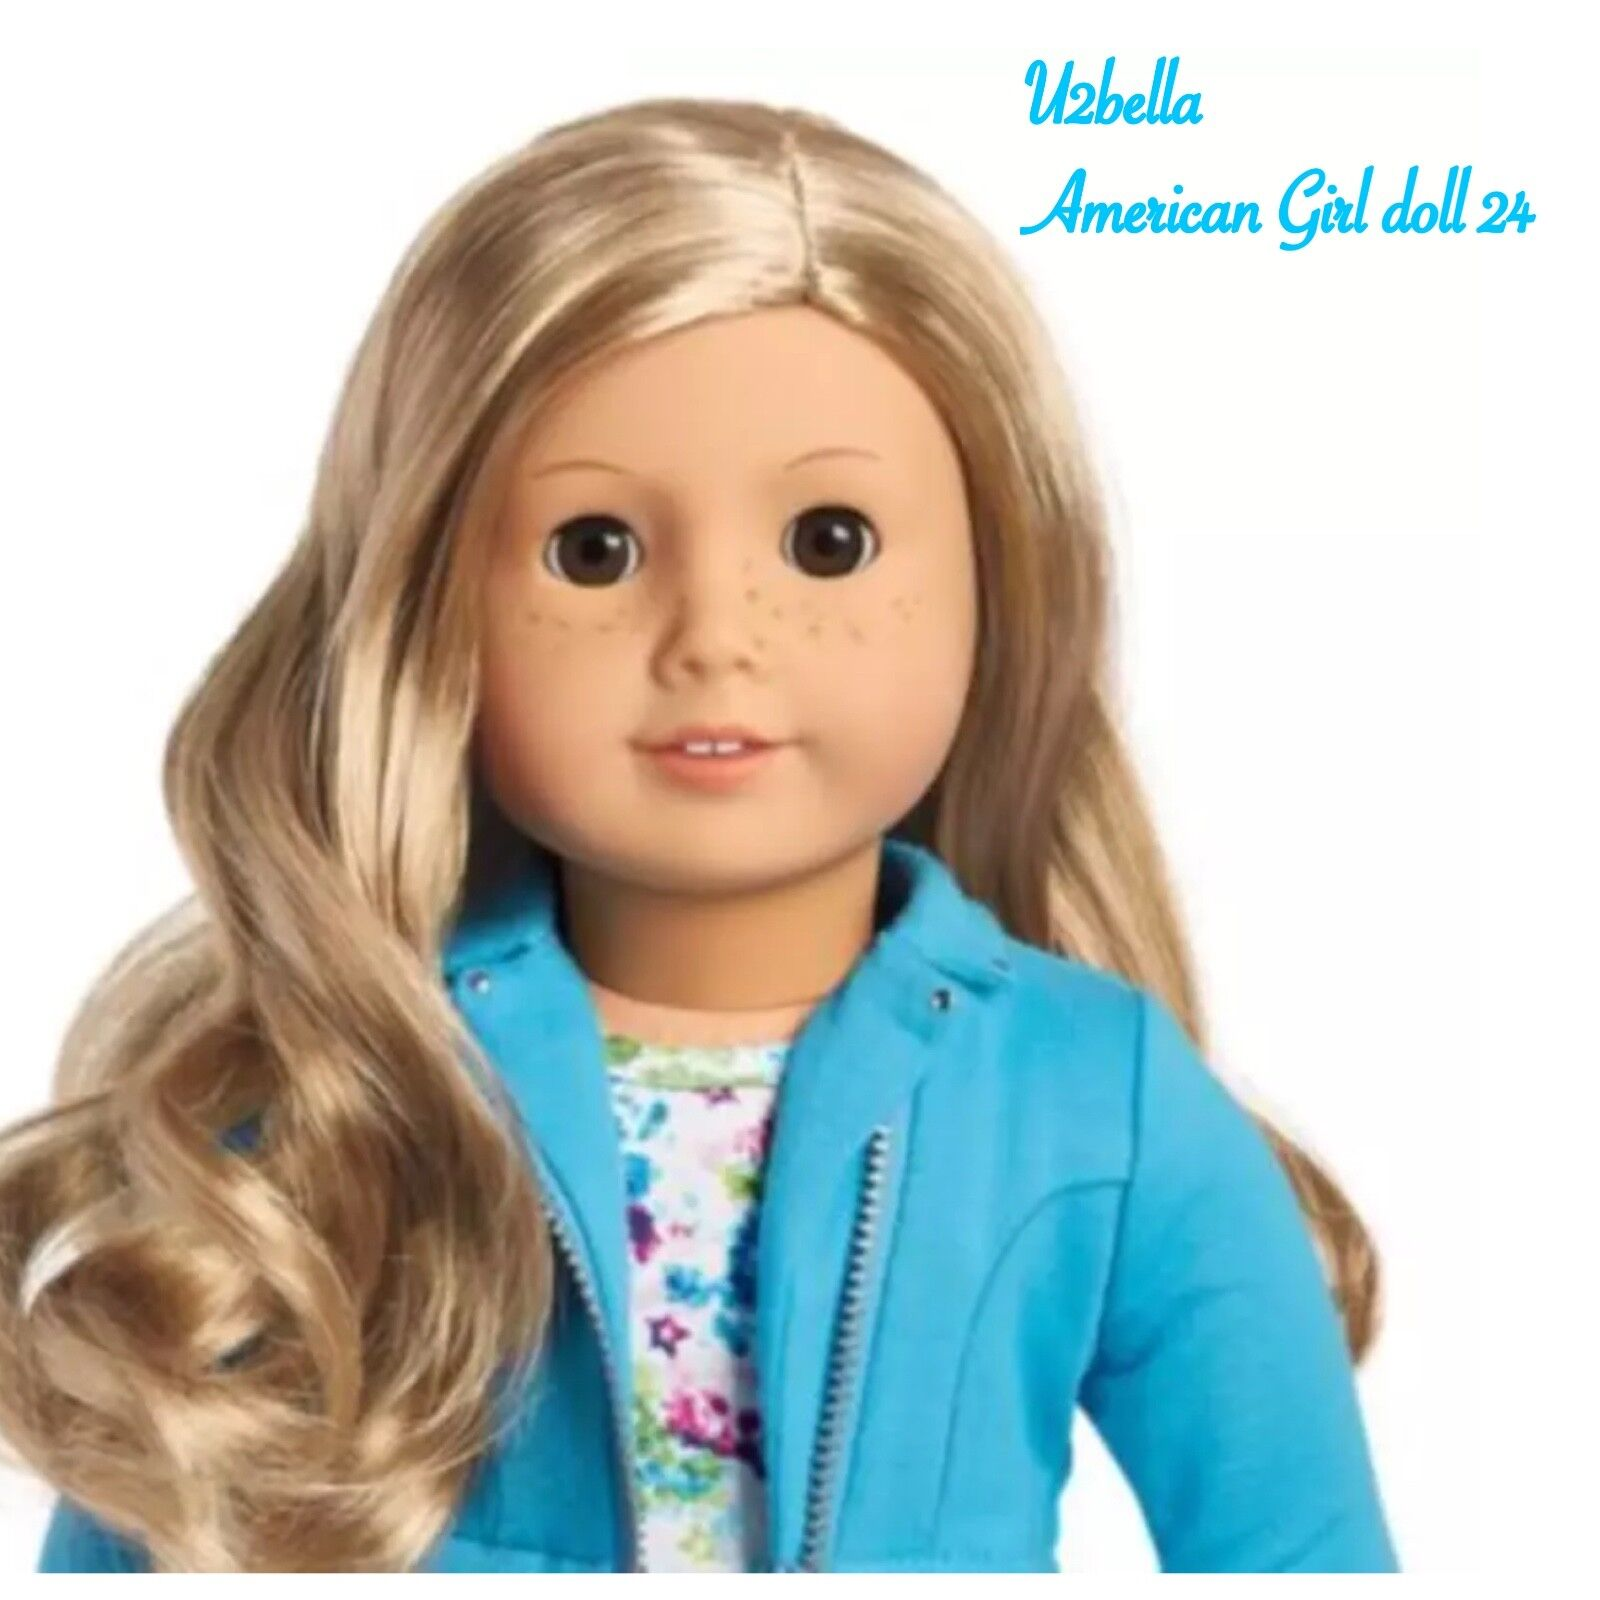 american girl truly me 24 doll wavy blonde hair freckles brown eyes